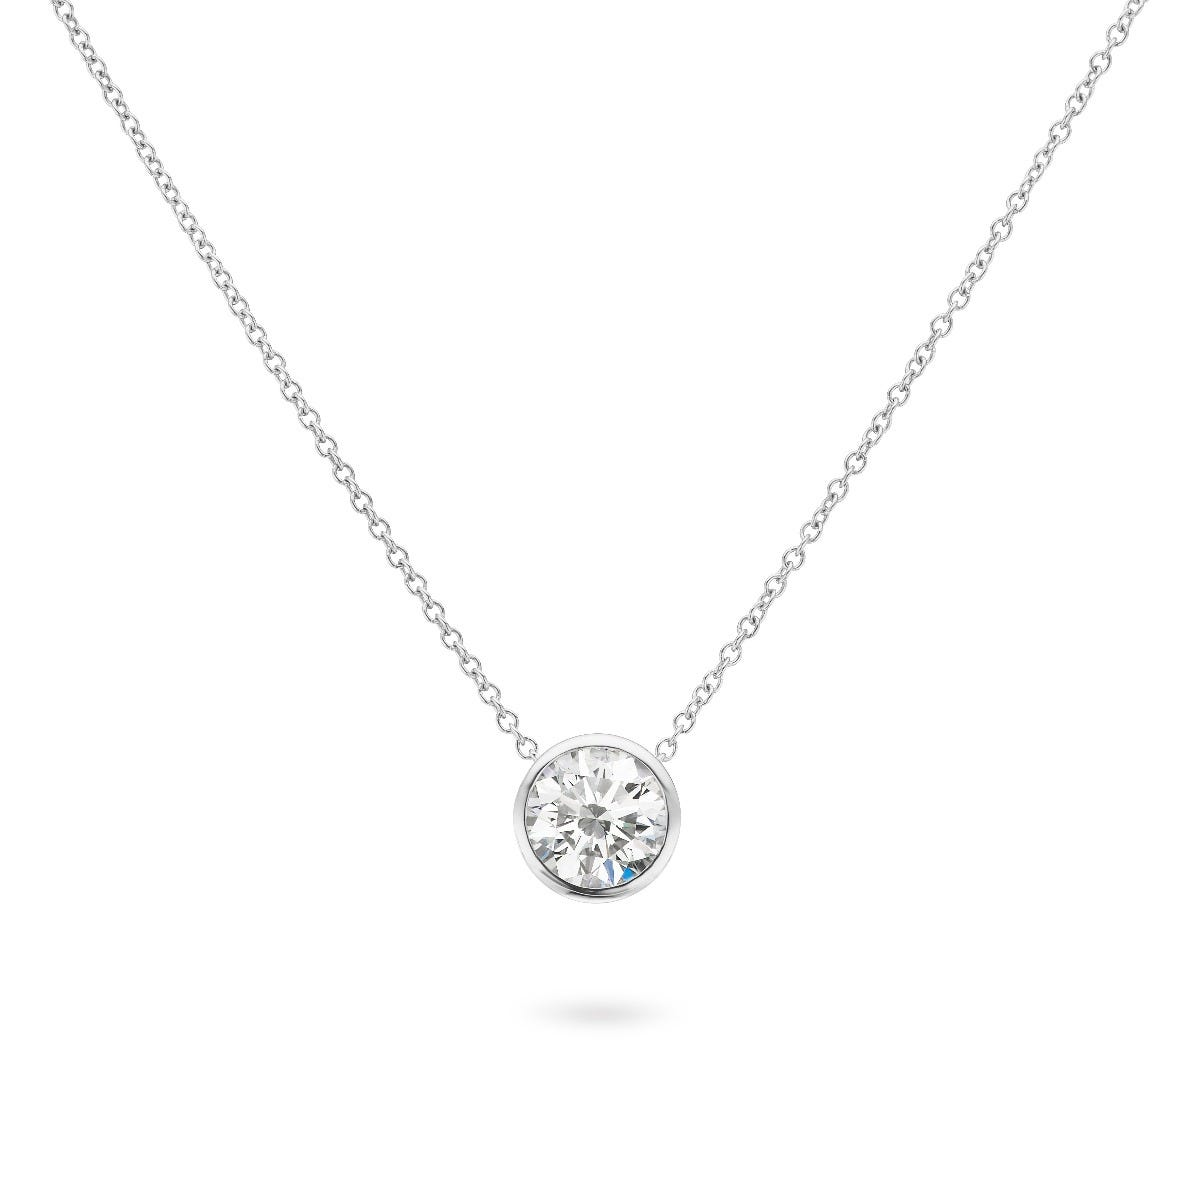 Lab-Crafted Bezel Set Pendant 7/8ctw. In 14k White Gold